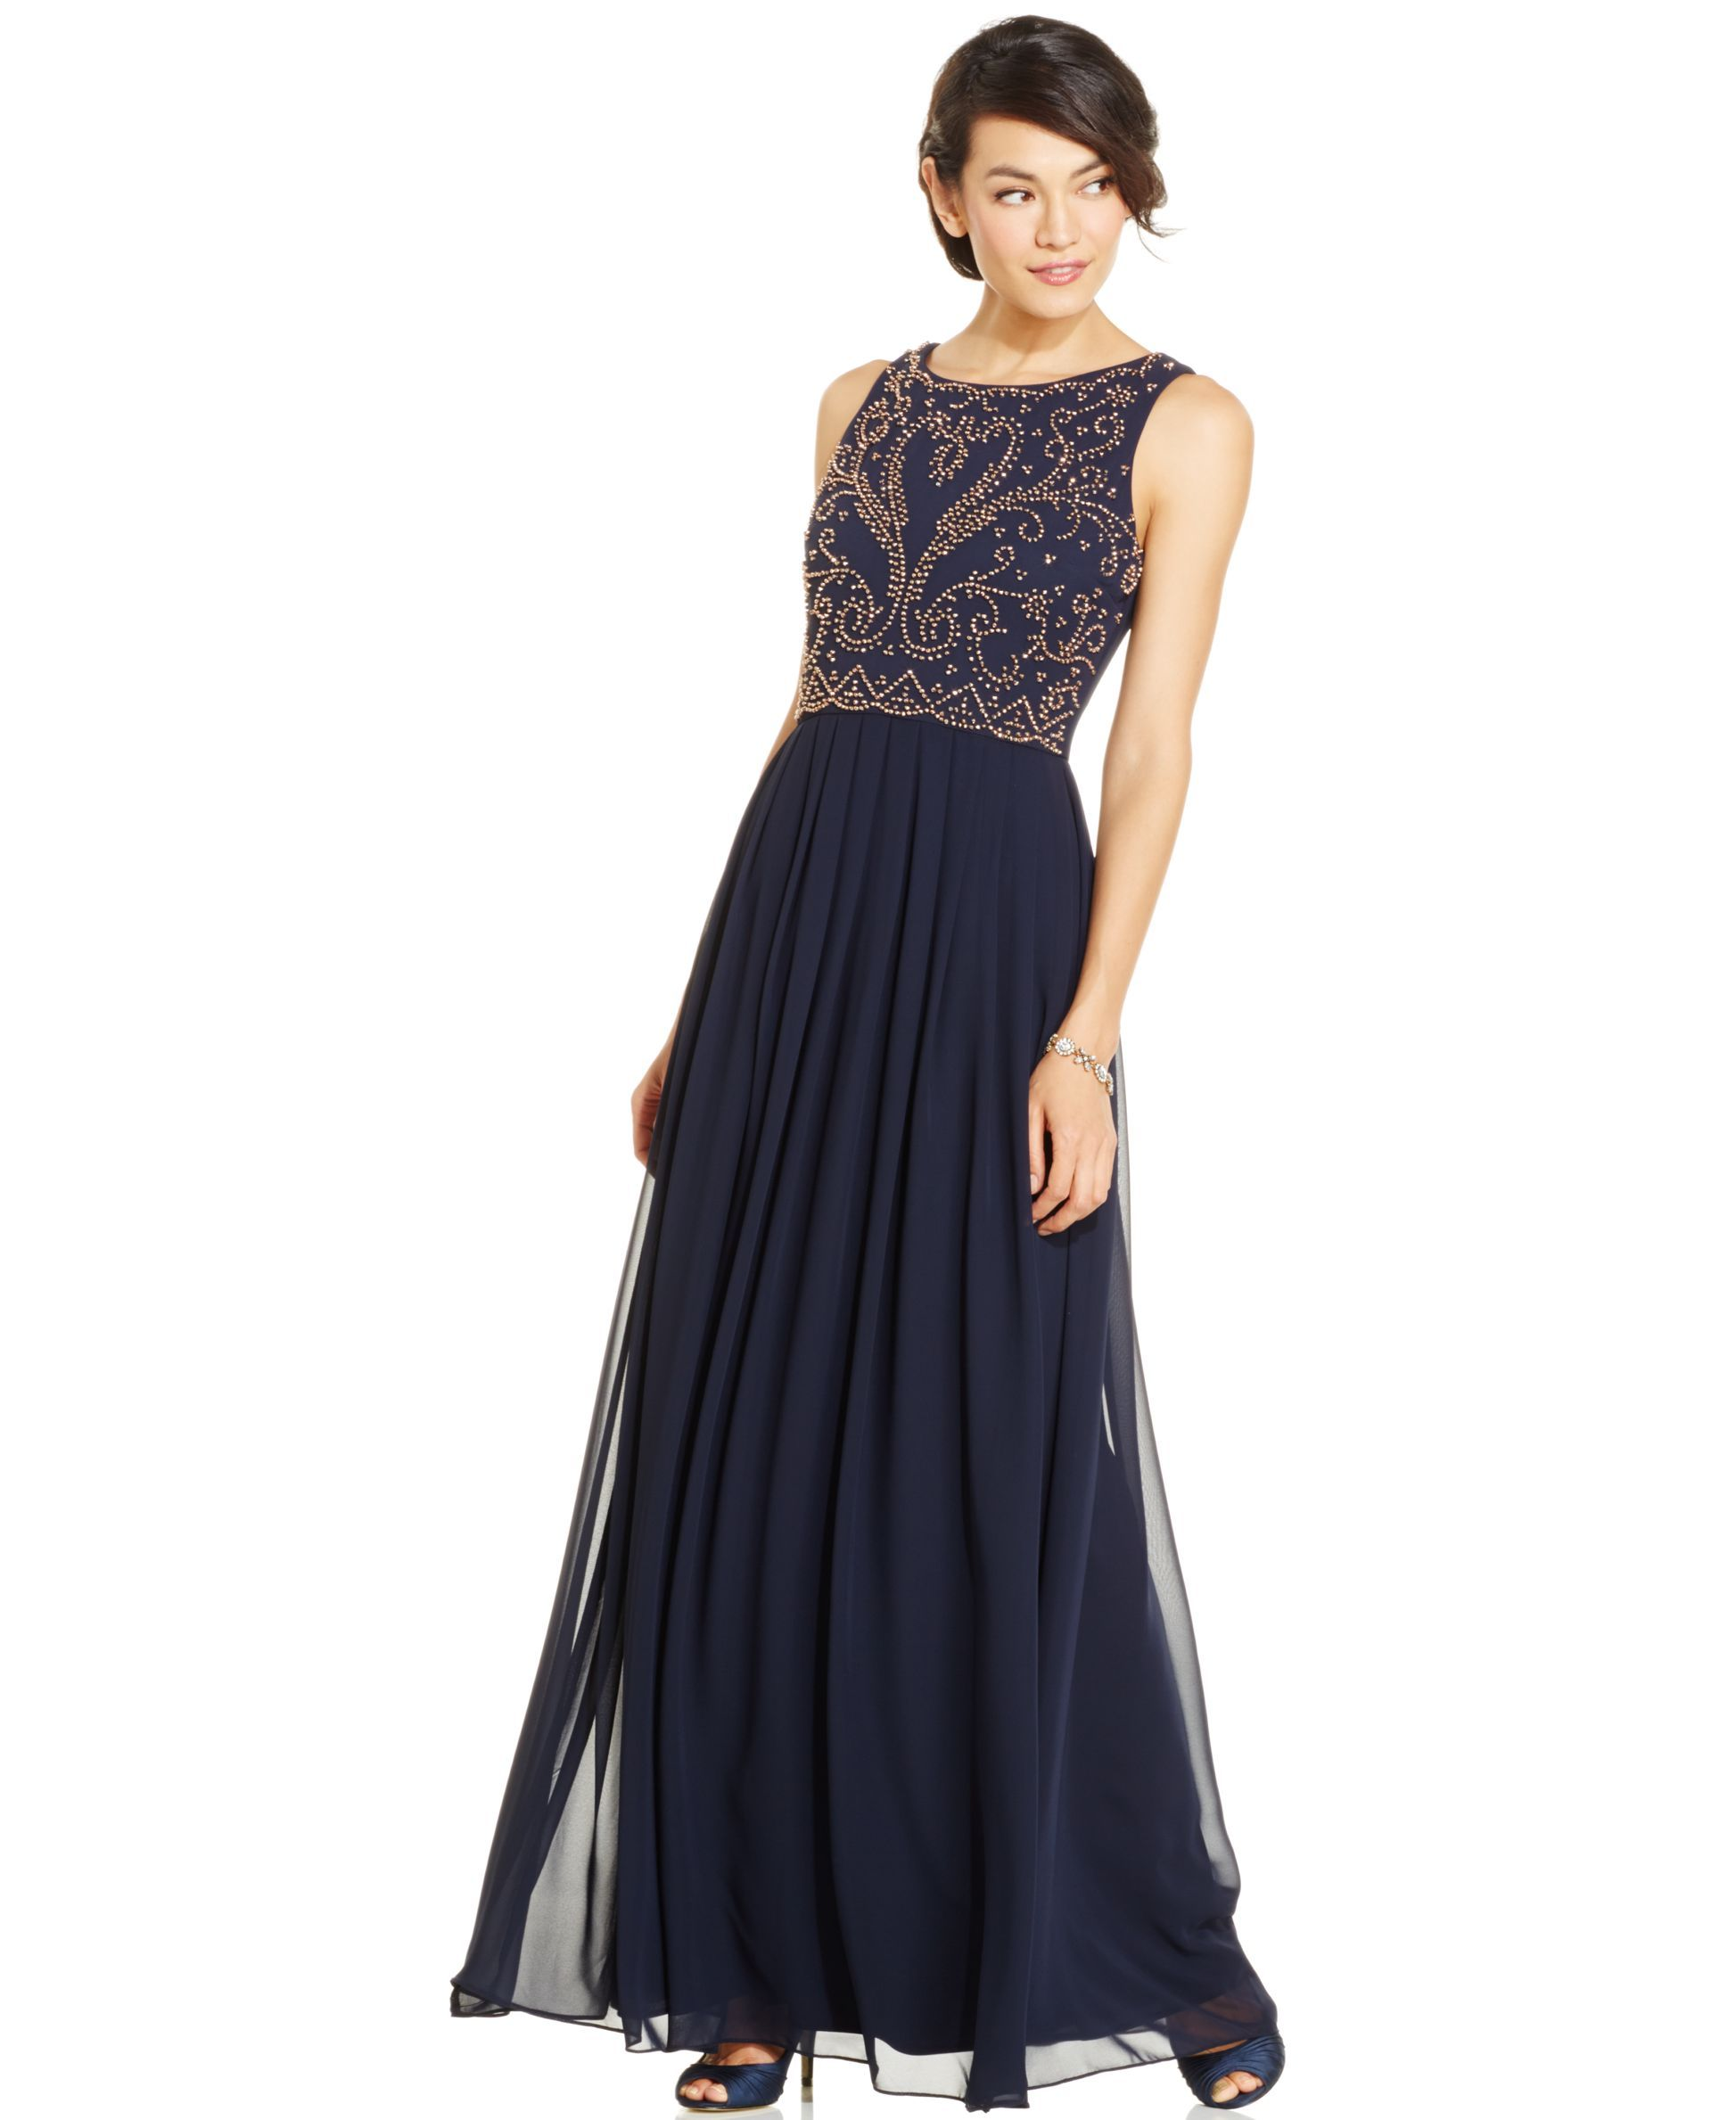 Xscape Embellished Chiffon Evening Gown | Products | Pinterest ...